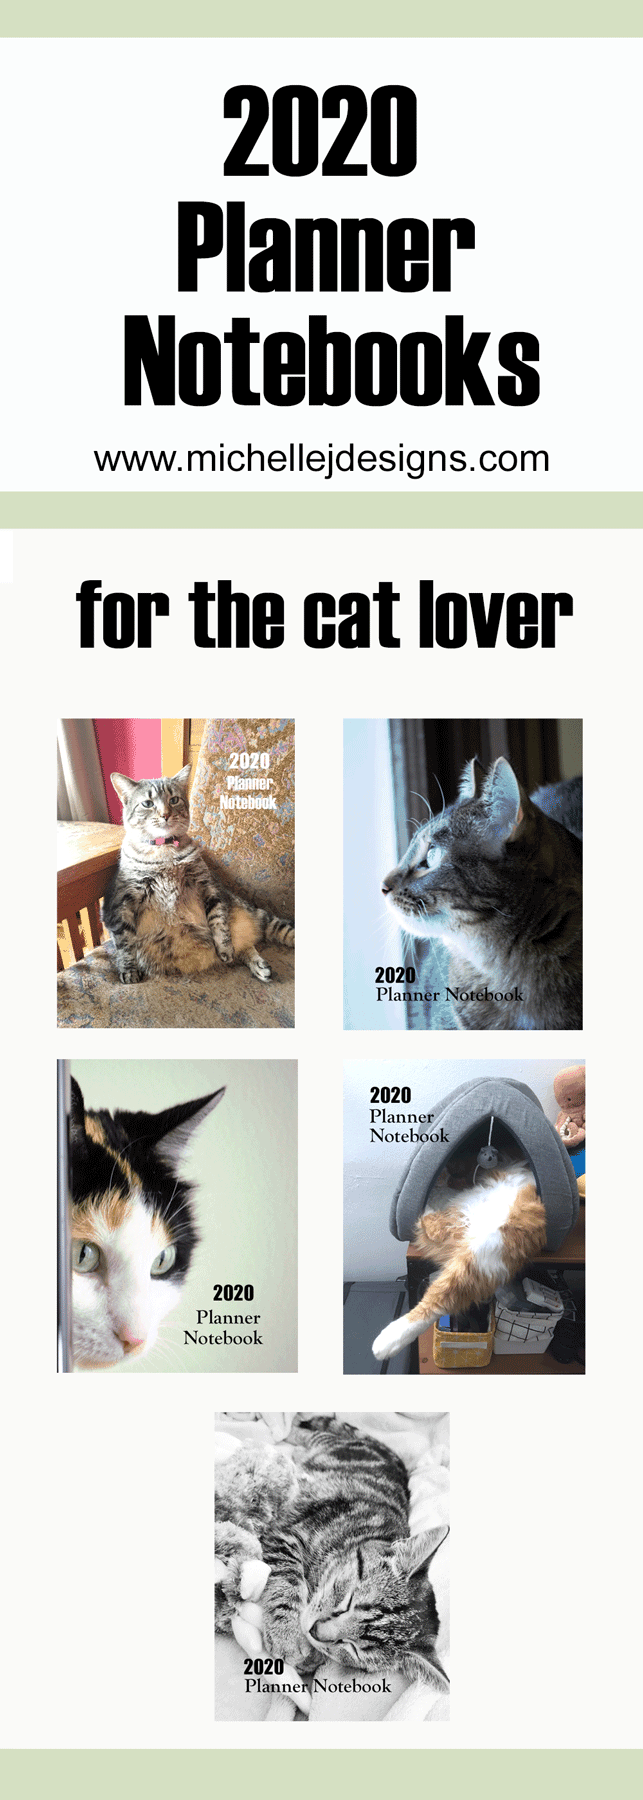 Images of 2020 Cat Planner Books